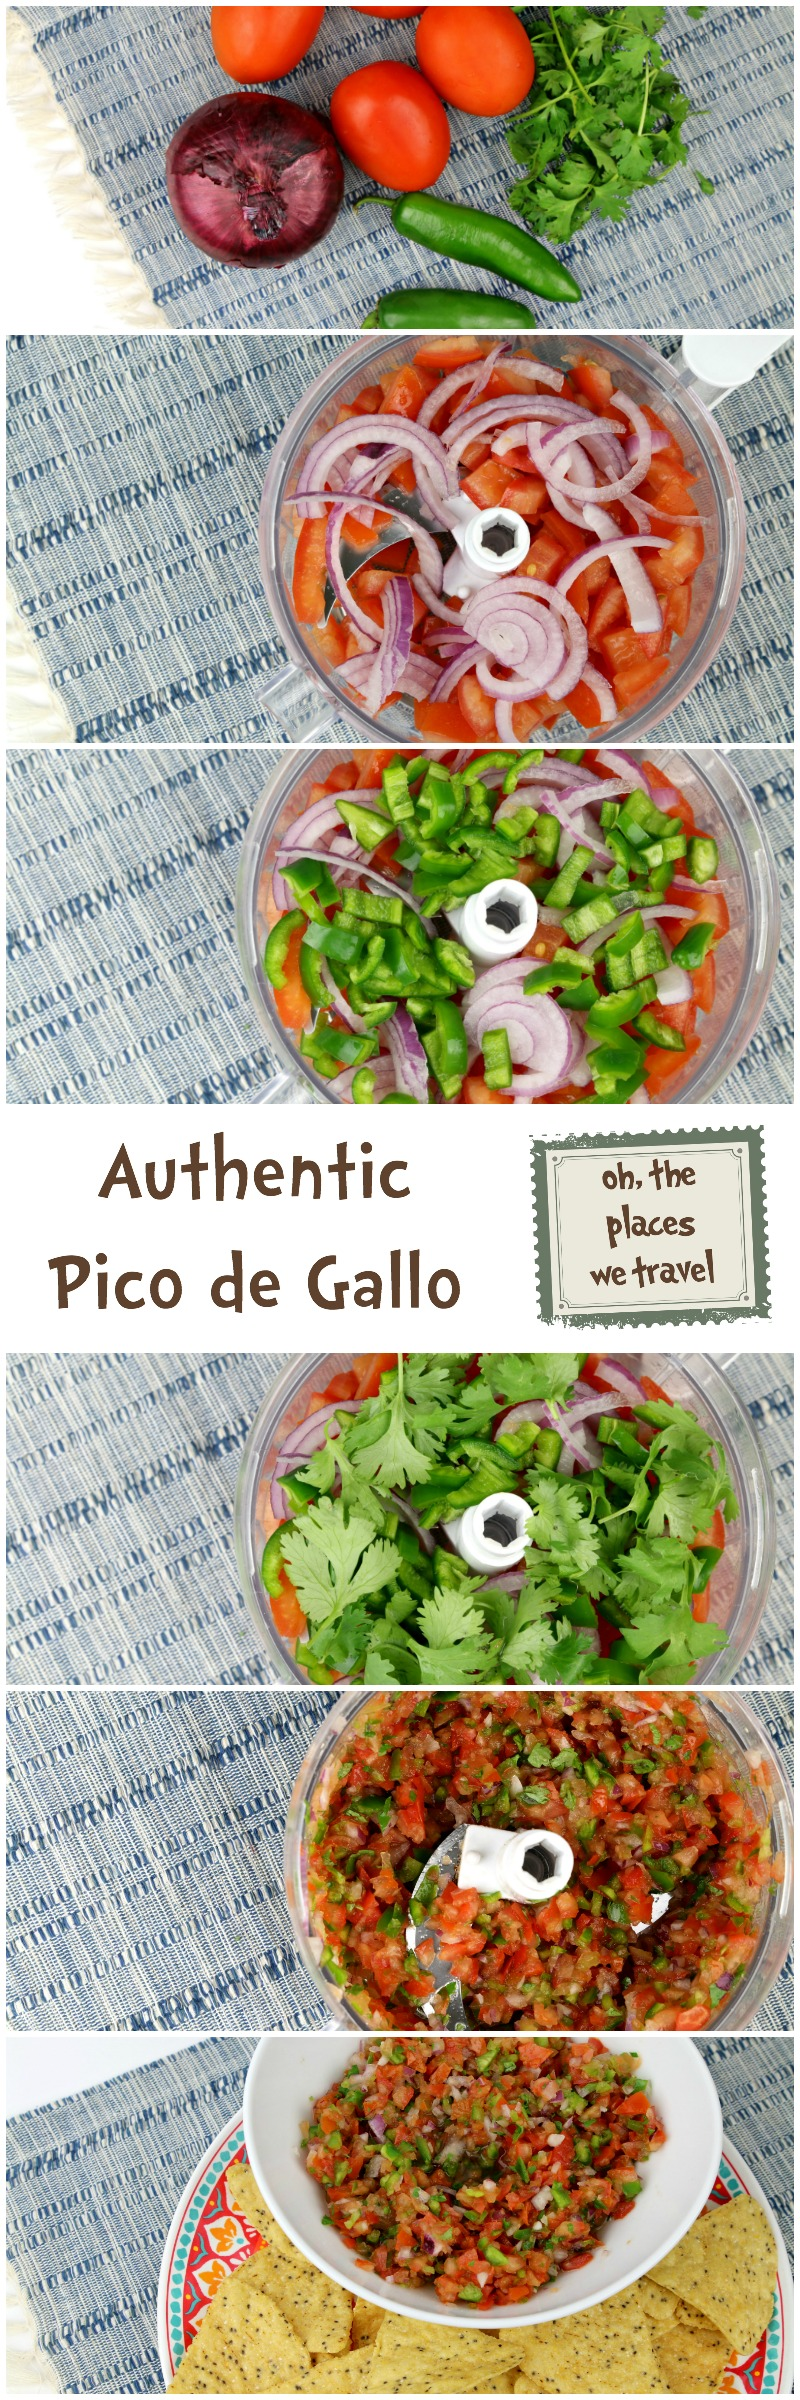 Authentic Pico de Gallo Recipe Pin